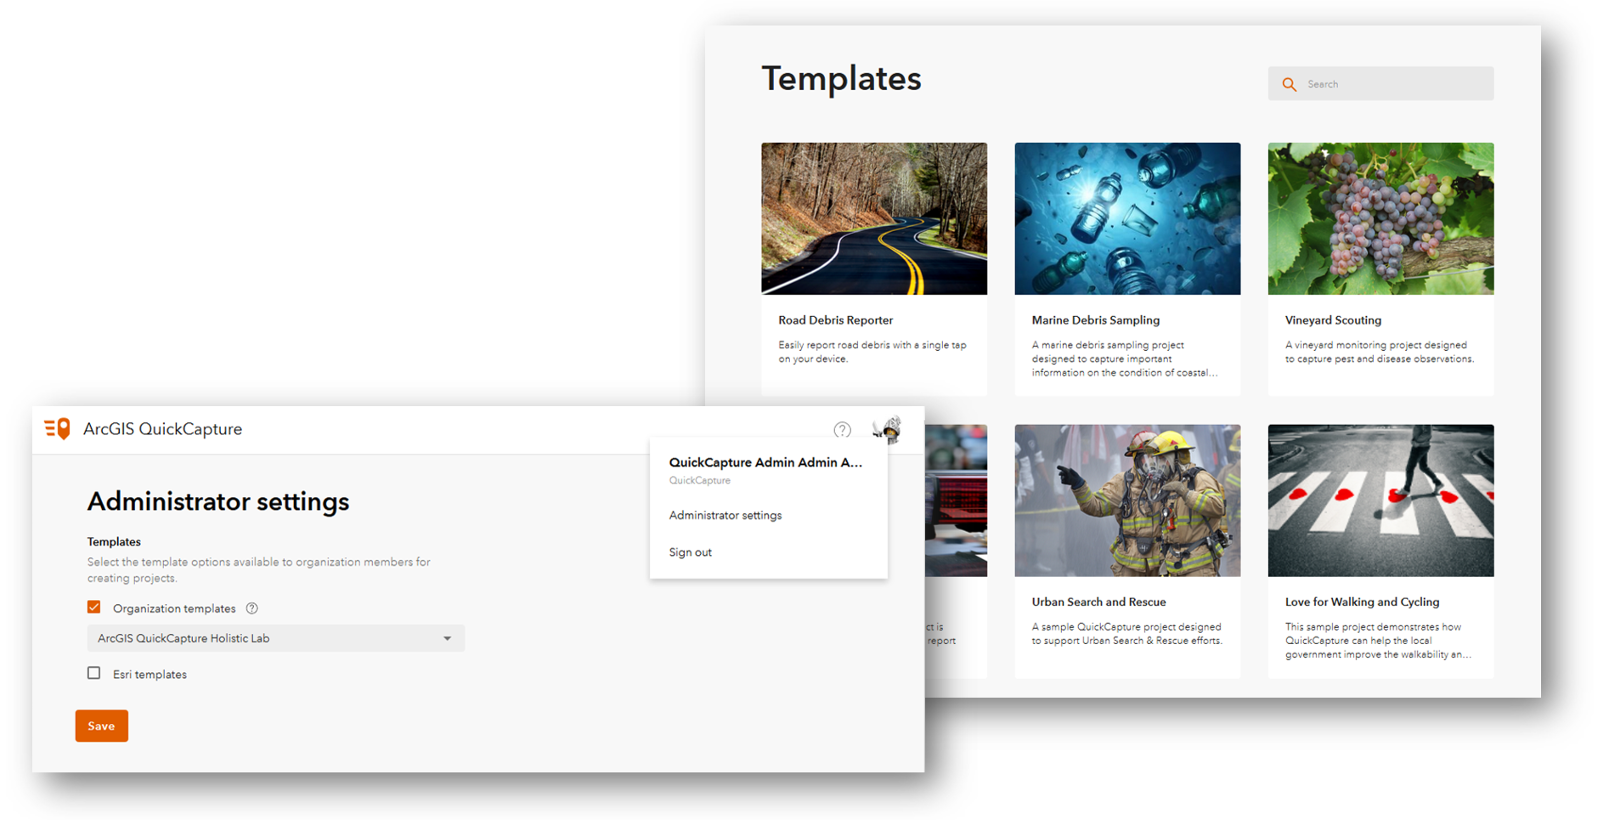 Image of QuickCapture Templates